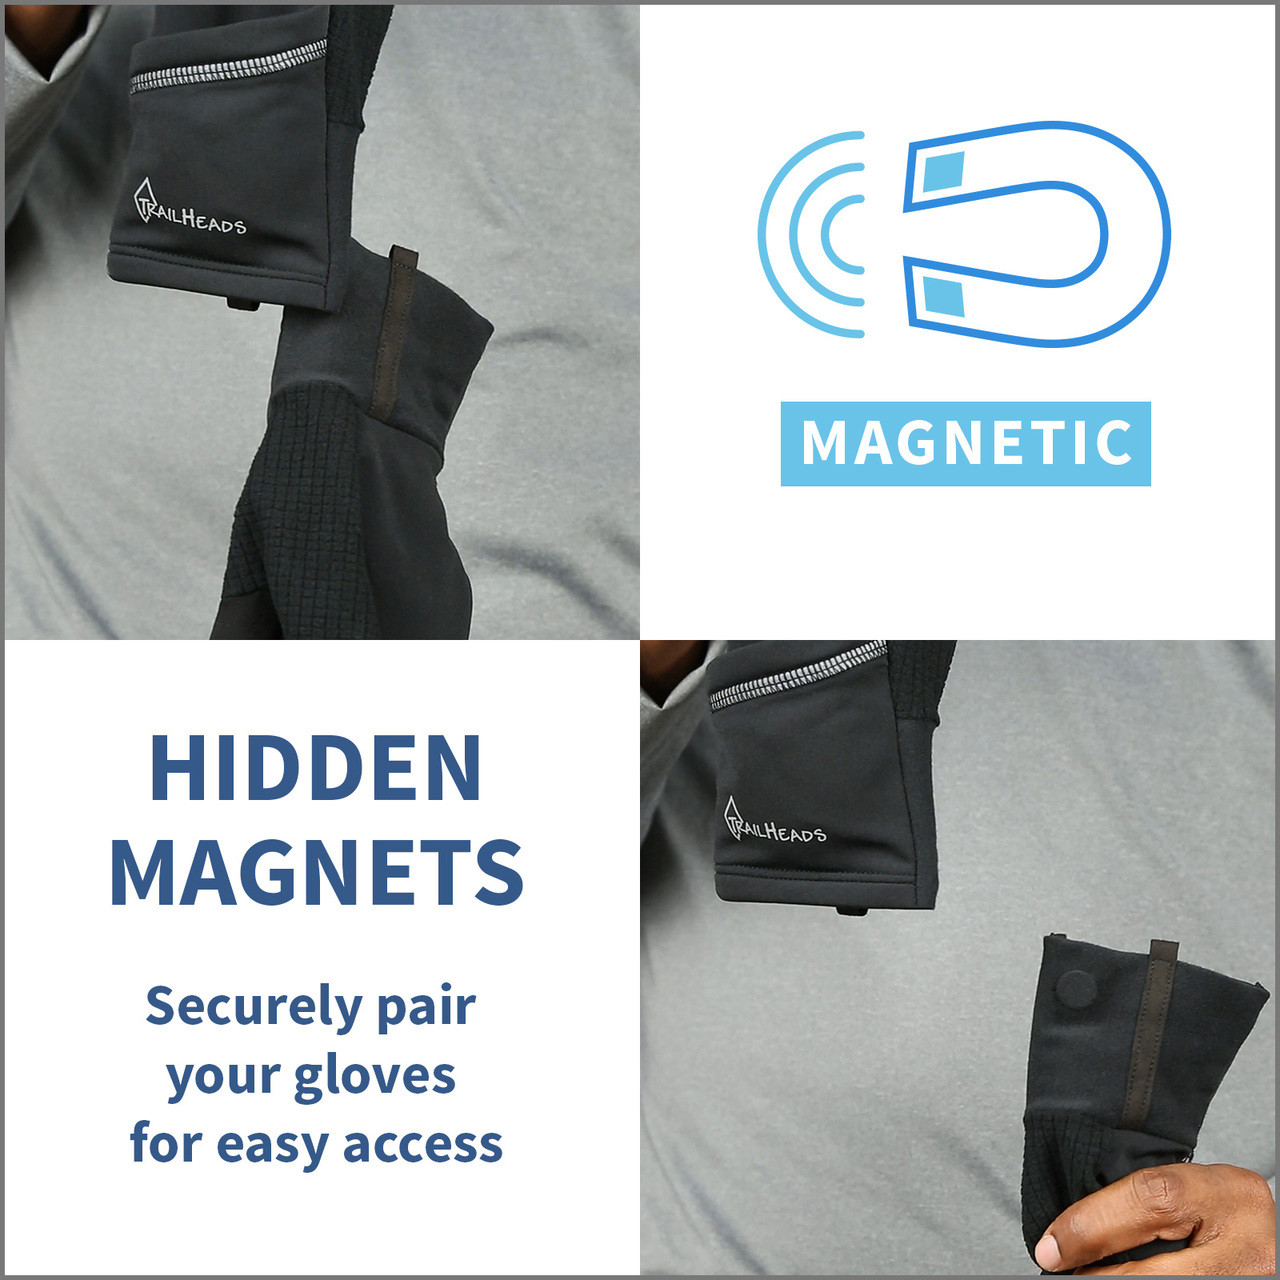 magnet feature to keep gloves together when not in use